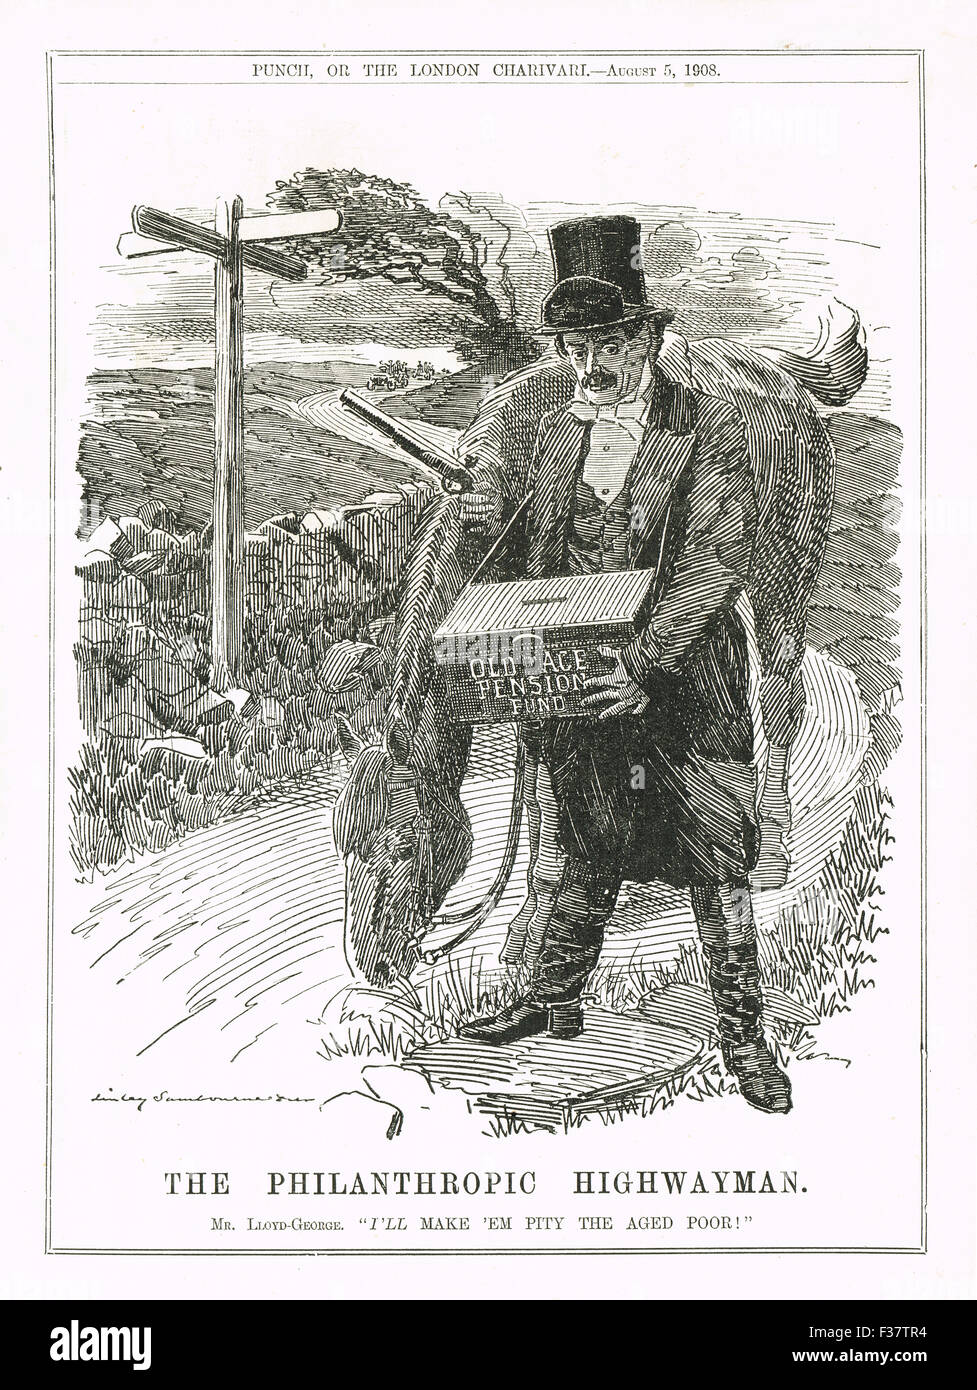 The Philanthropic Highwayman Lloyd George Old Age Pensions Act 1908 Stock Photo